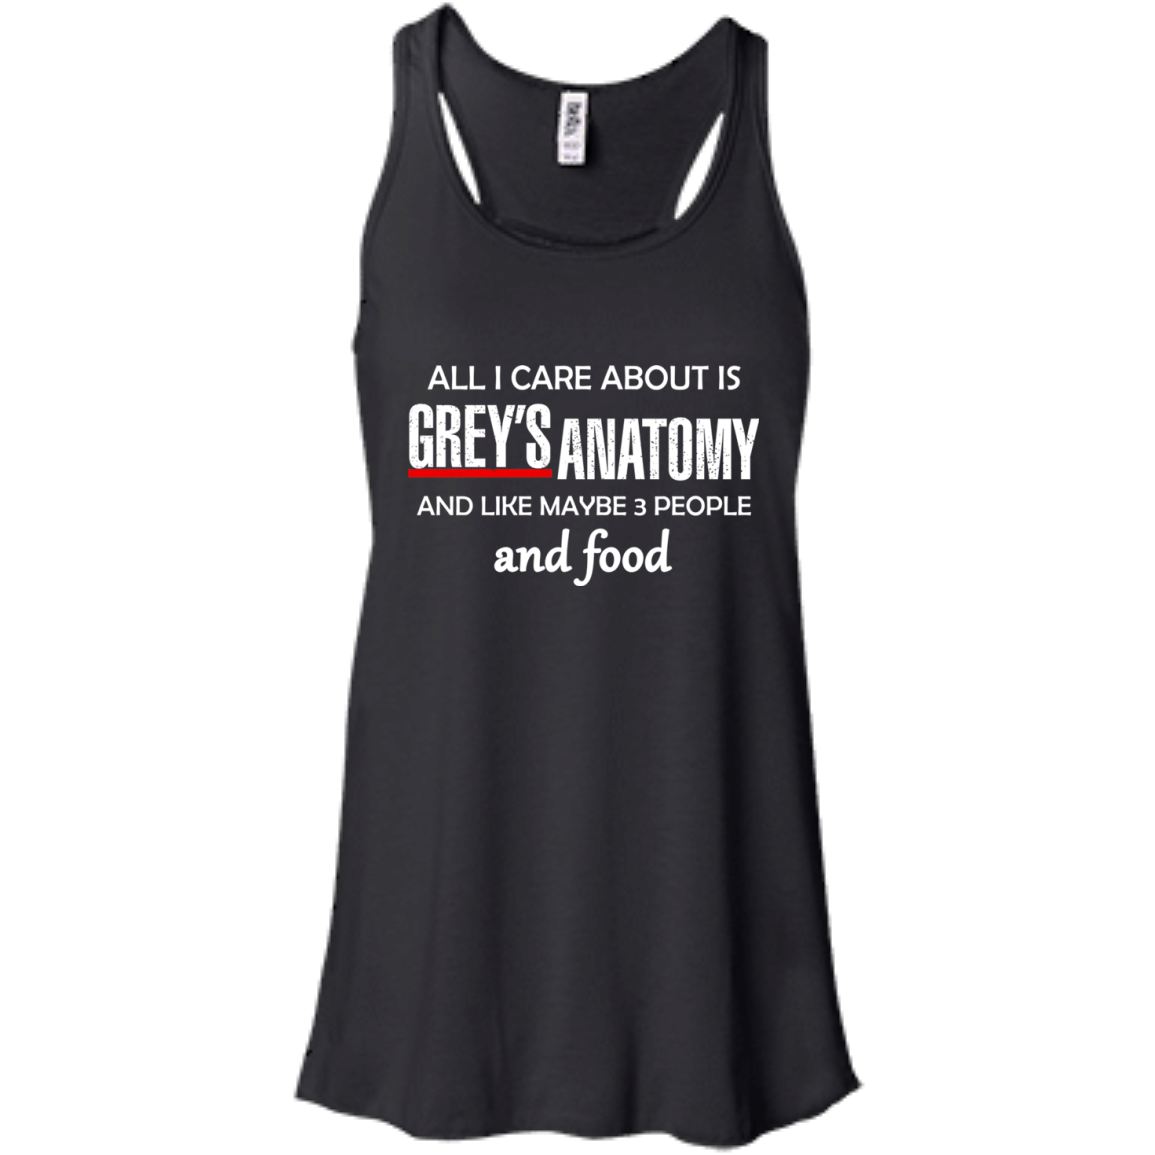 All I Care About Is Greys Anatomy And Food T Shirt Sweater Teesgrab